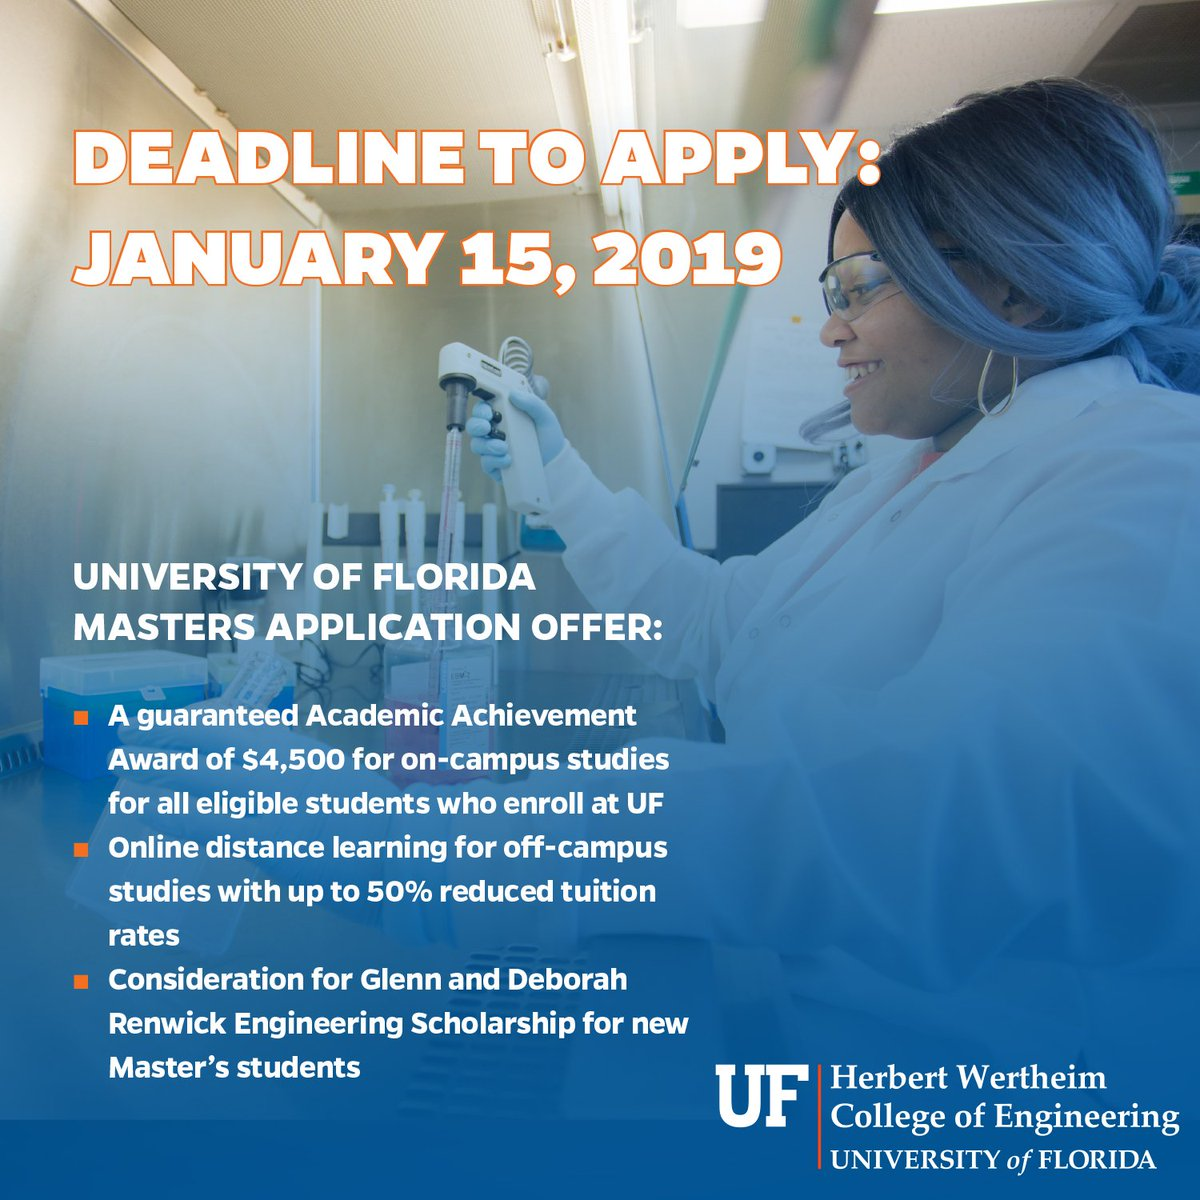 Uf Application Deadline >> Uf Chemical Engineering On Twitter The Deadline To Apply